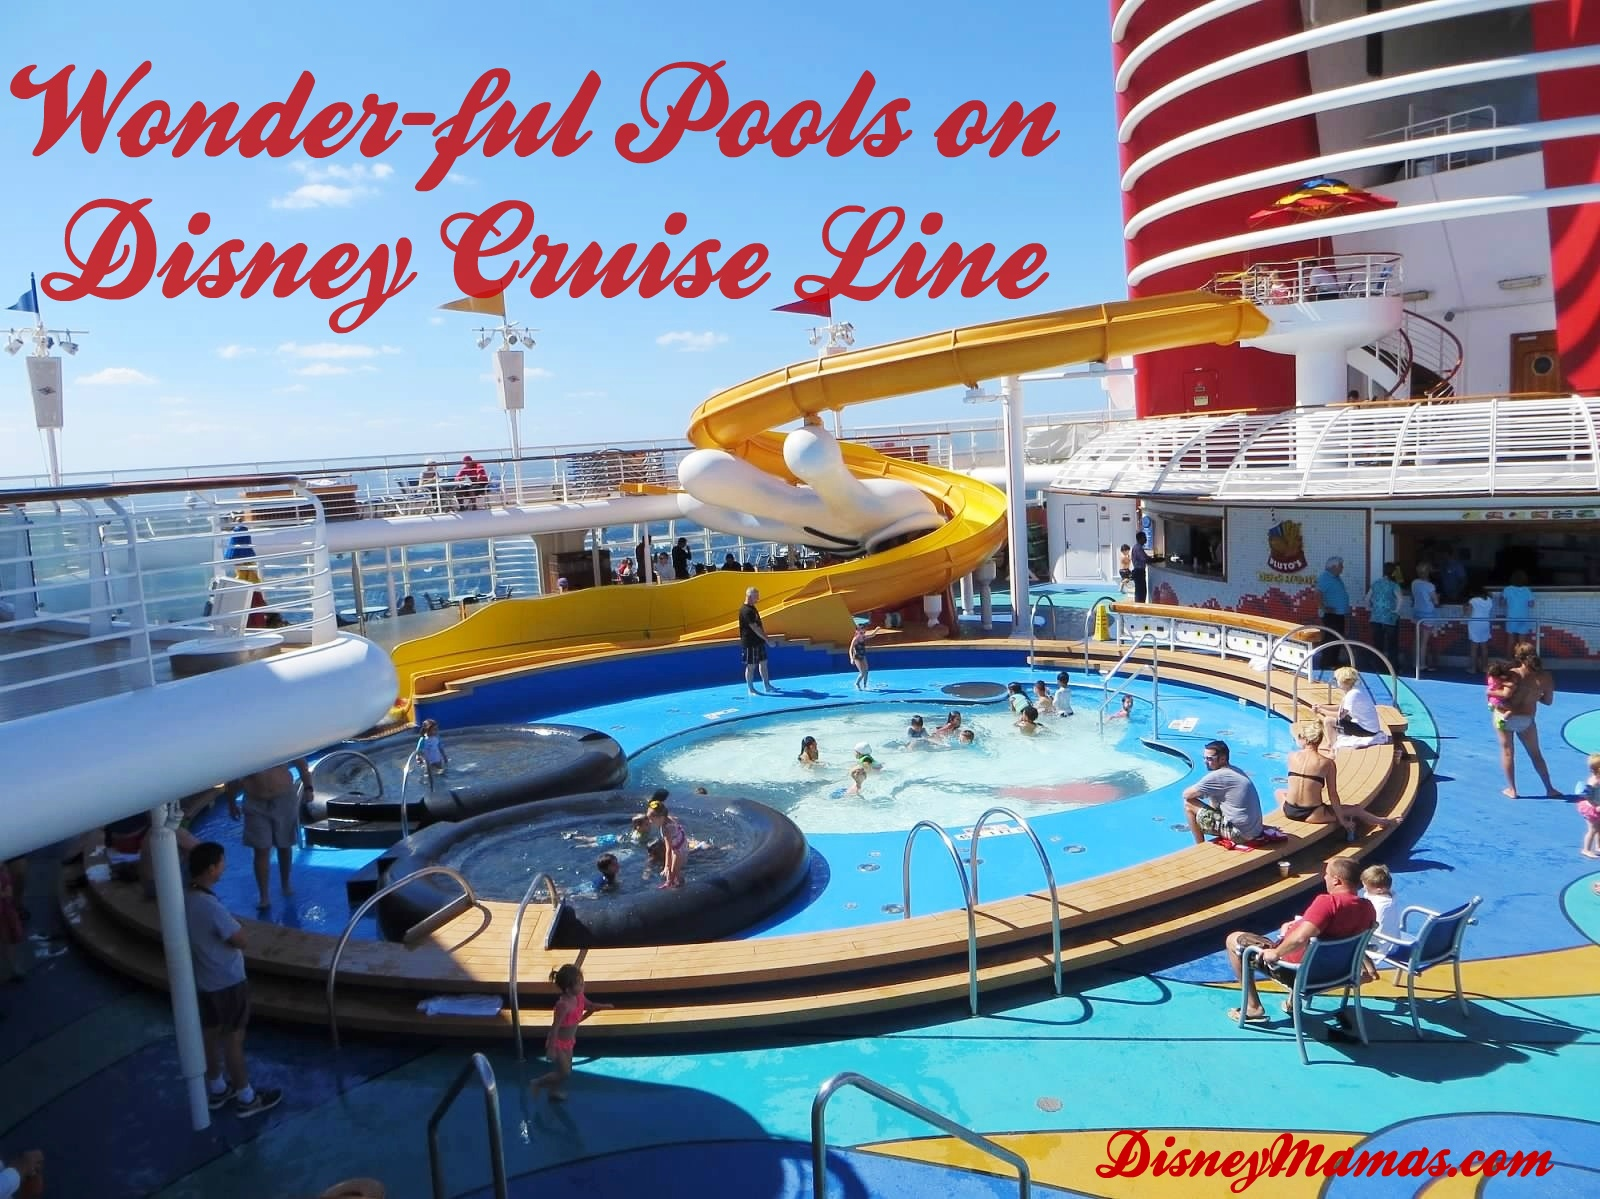 Disney Cruise Line has pools to suite every traveller!